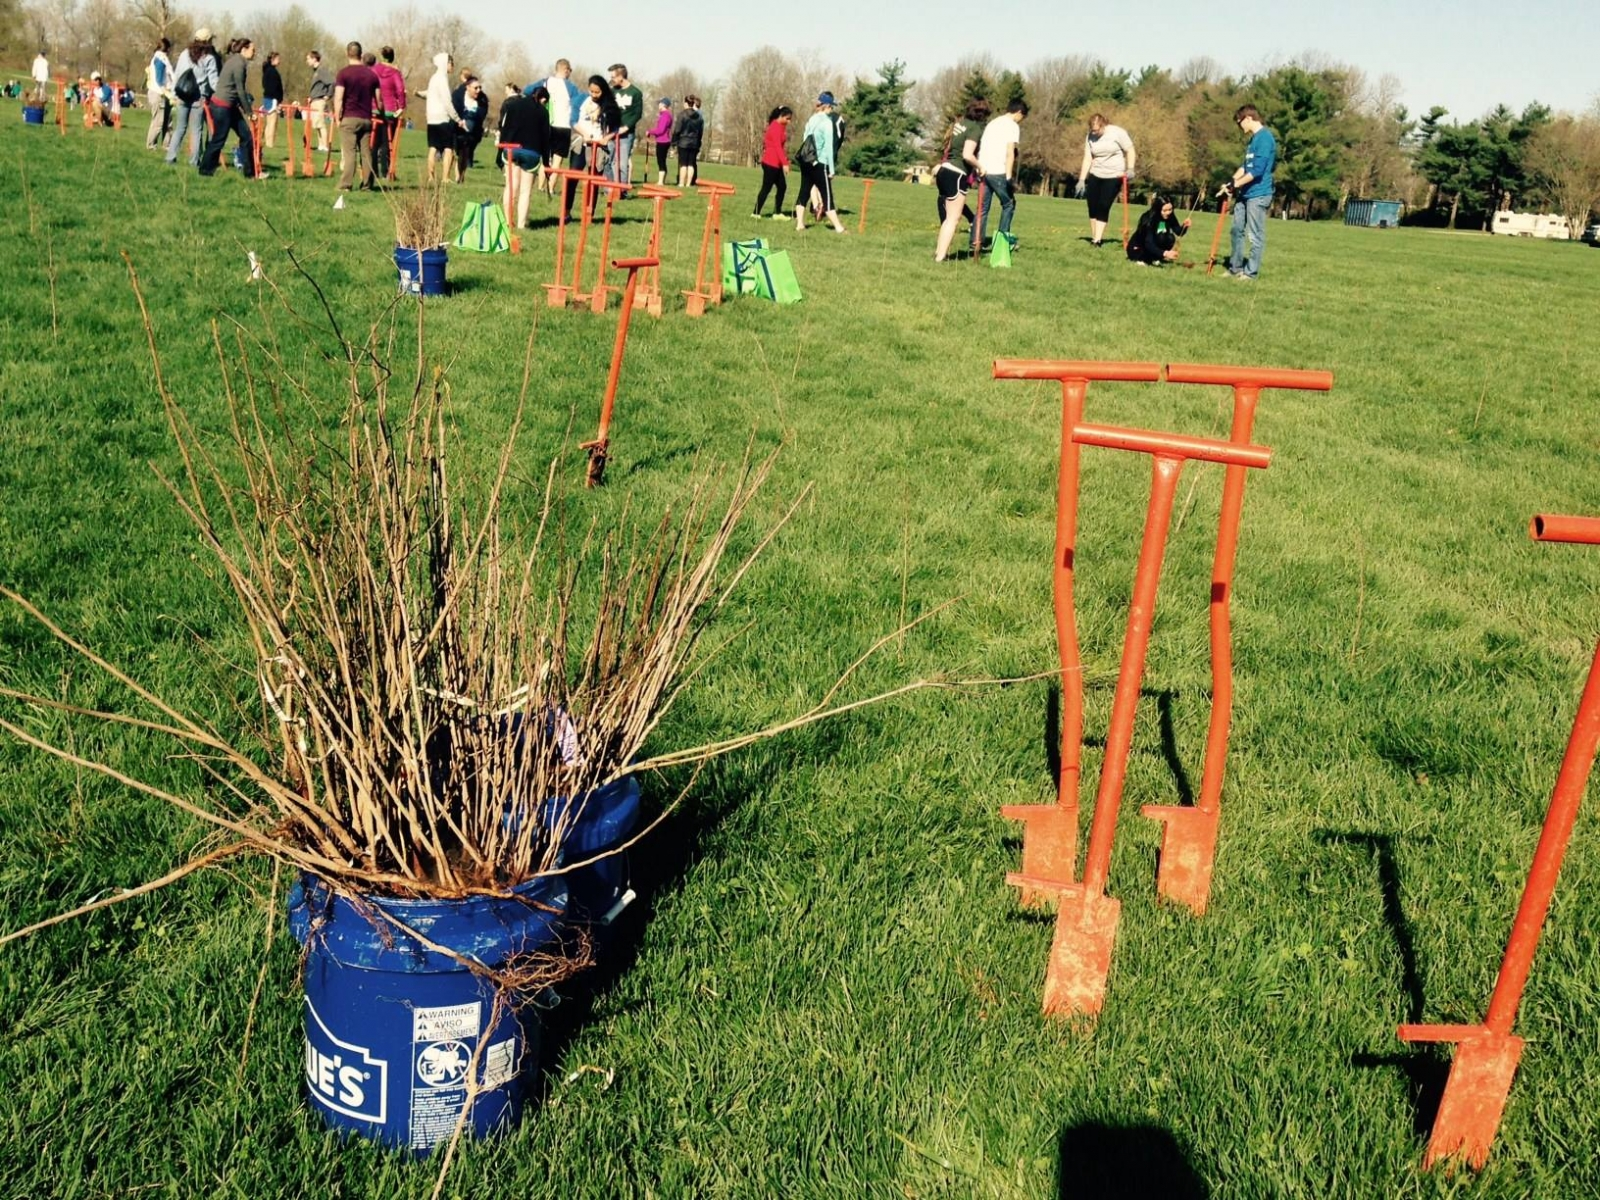 volunteers planting trees at a Reforest The Bluegrass event